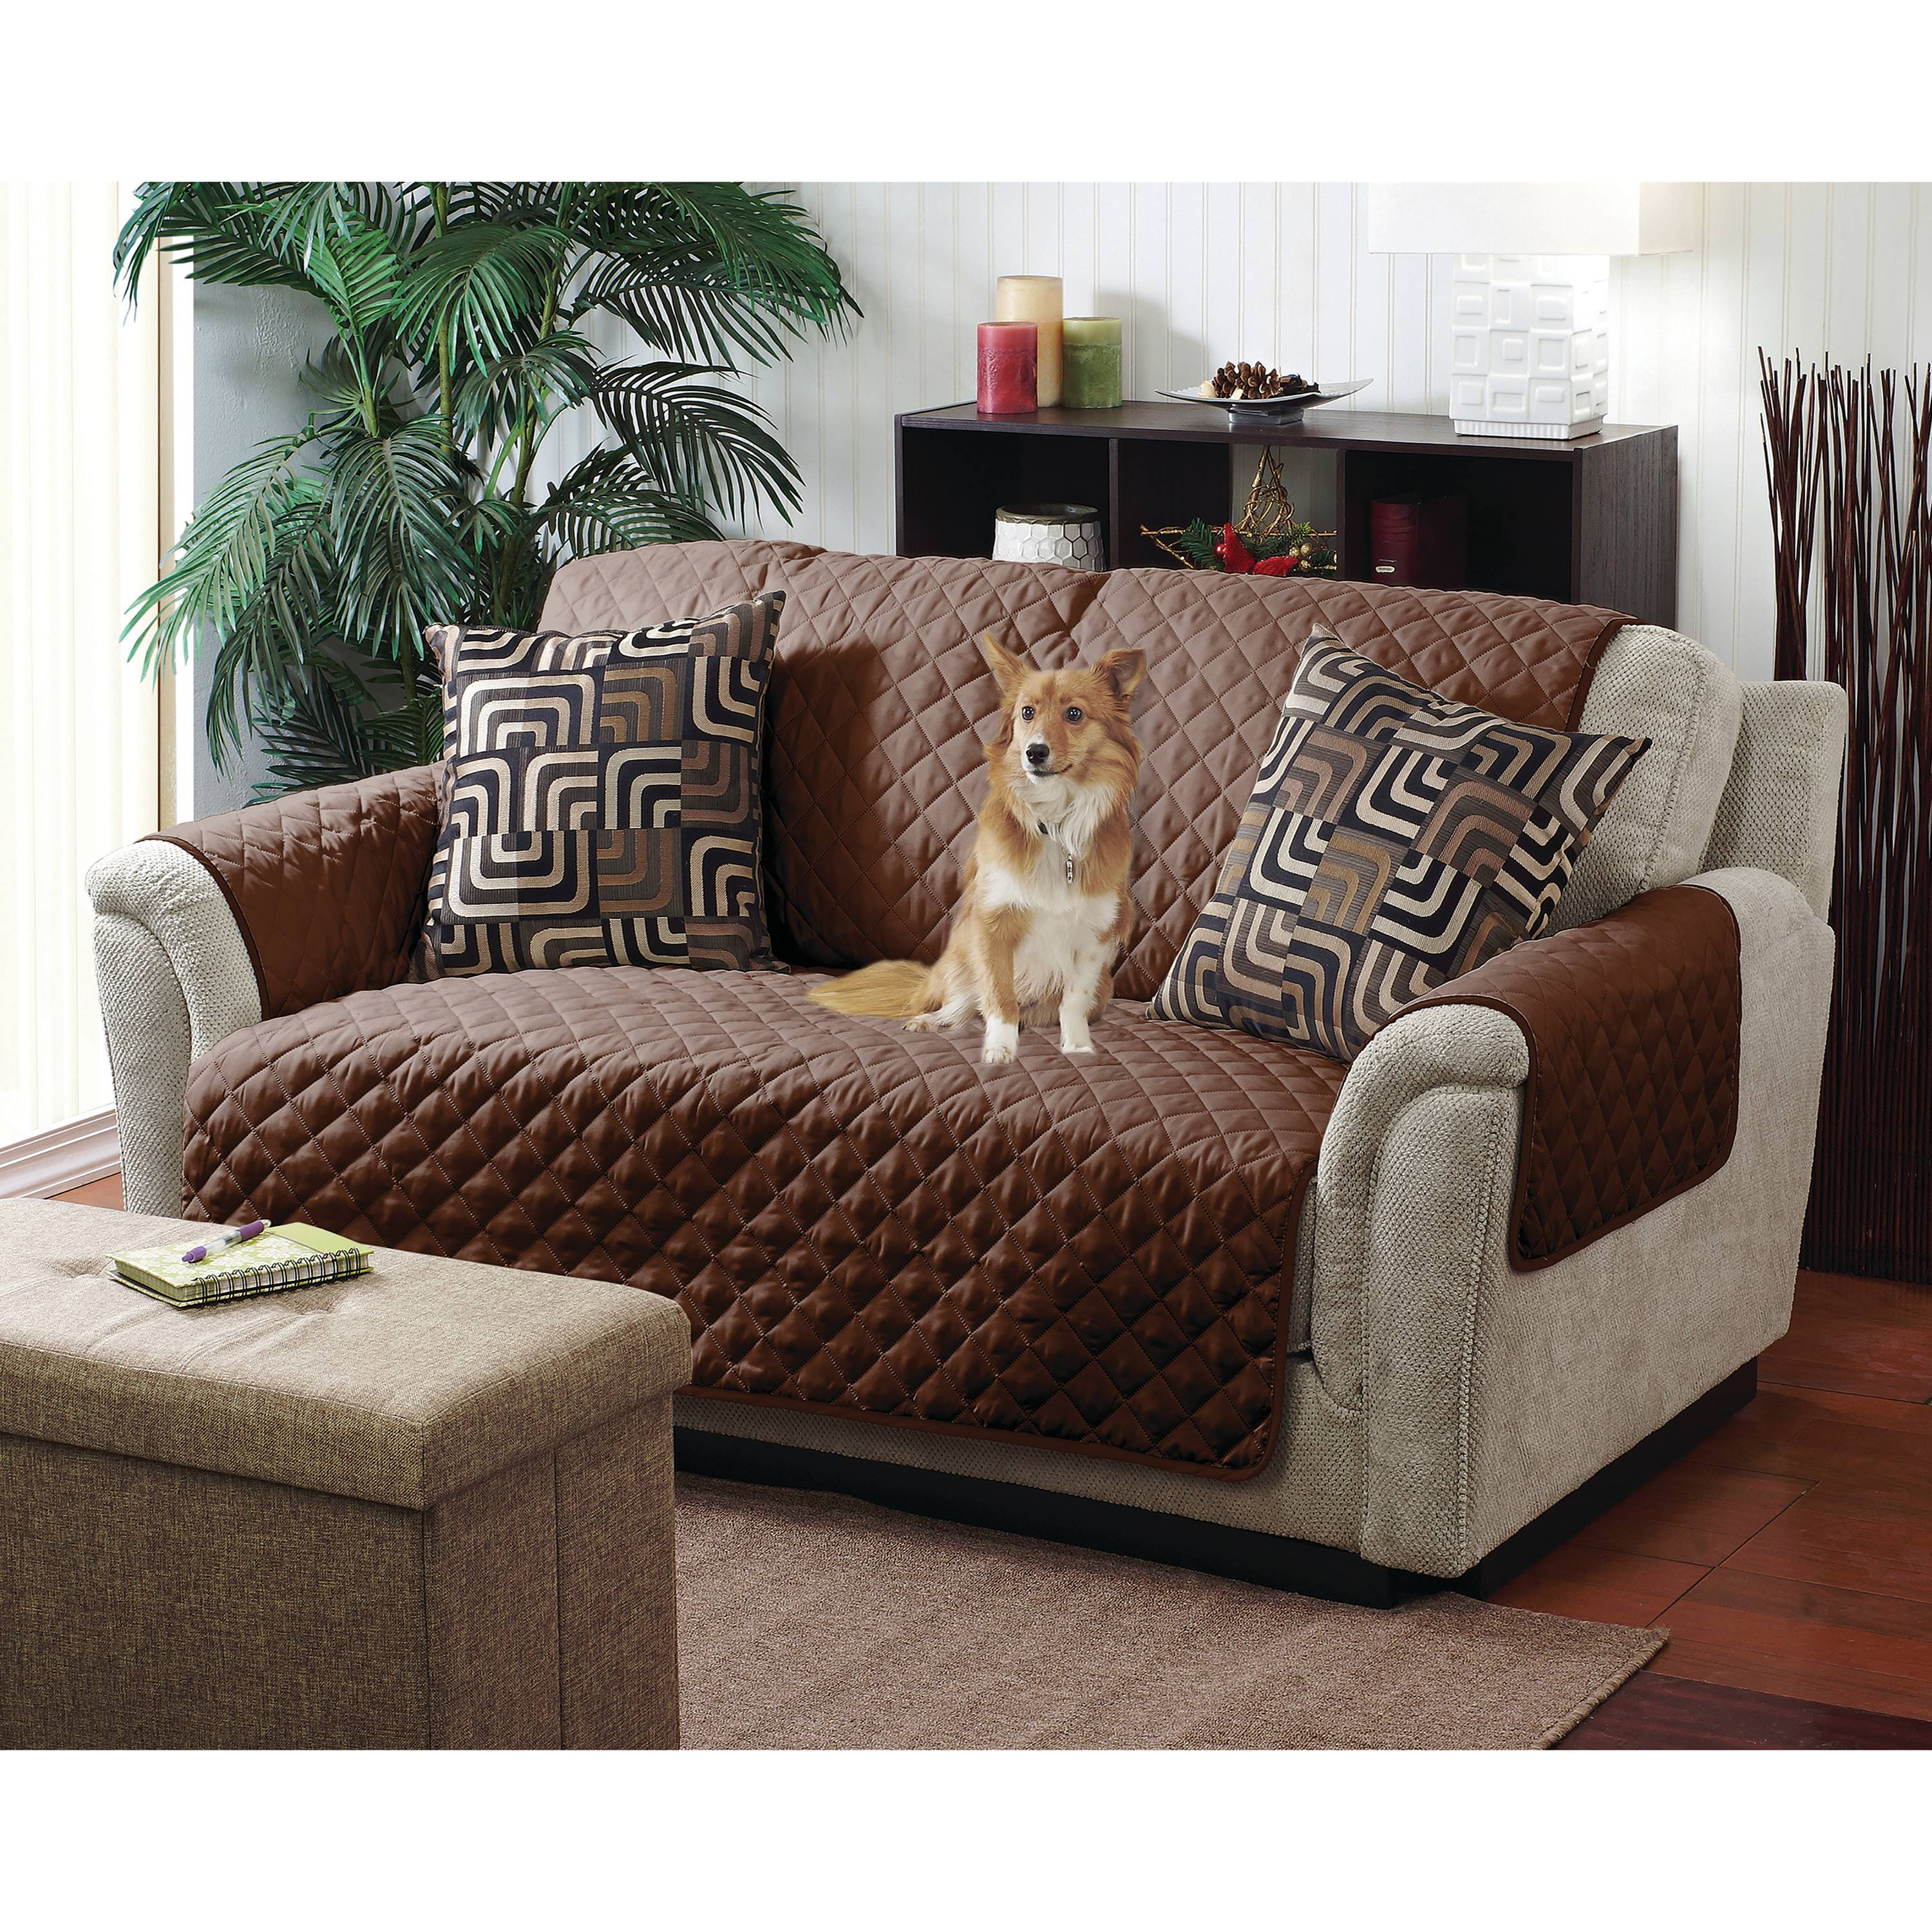 Two Sided Sofa Home Details Double Sided Sofa Furniture Protector Cover